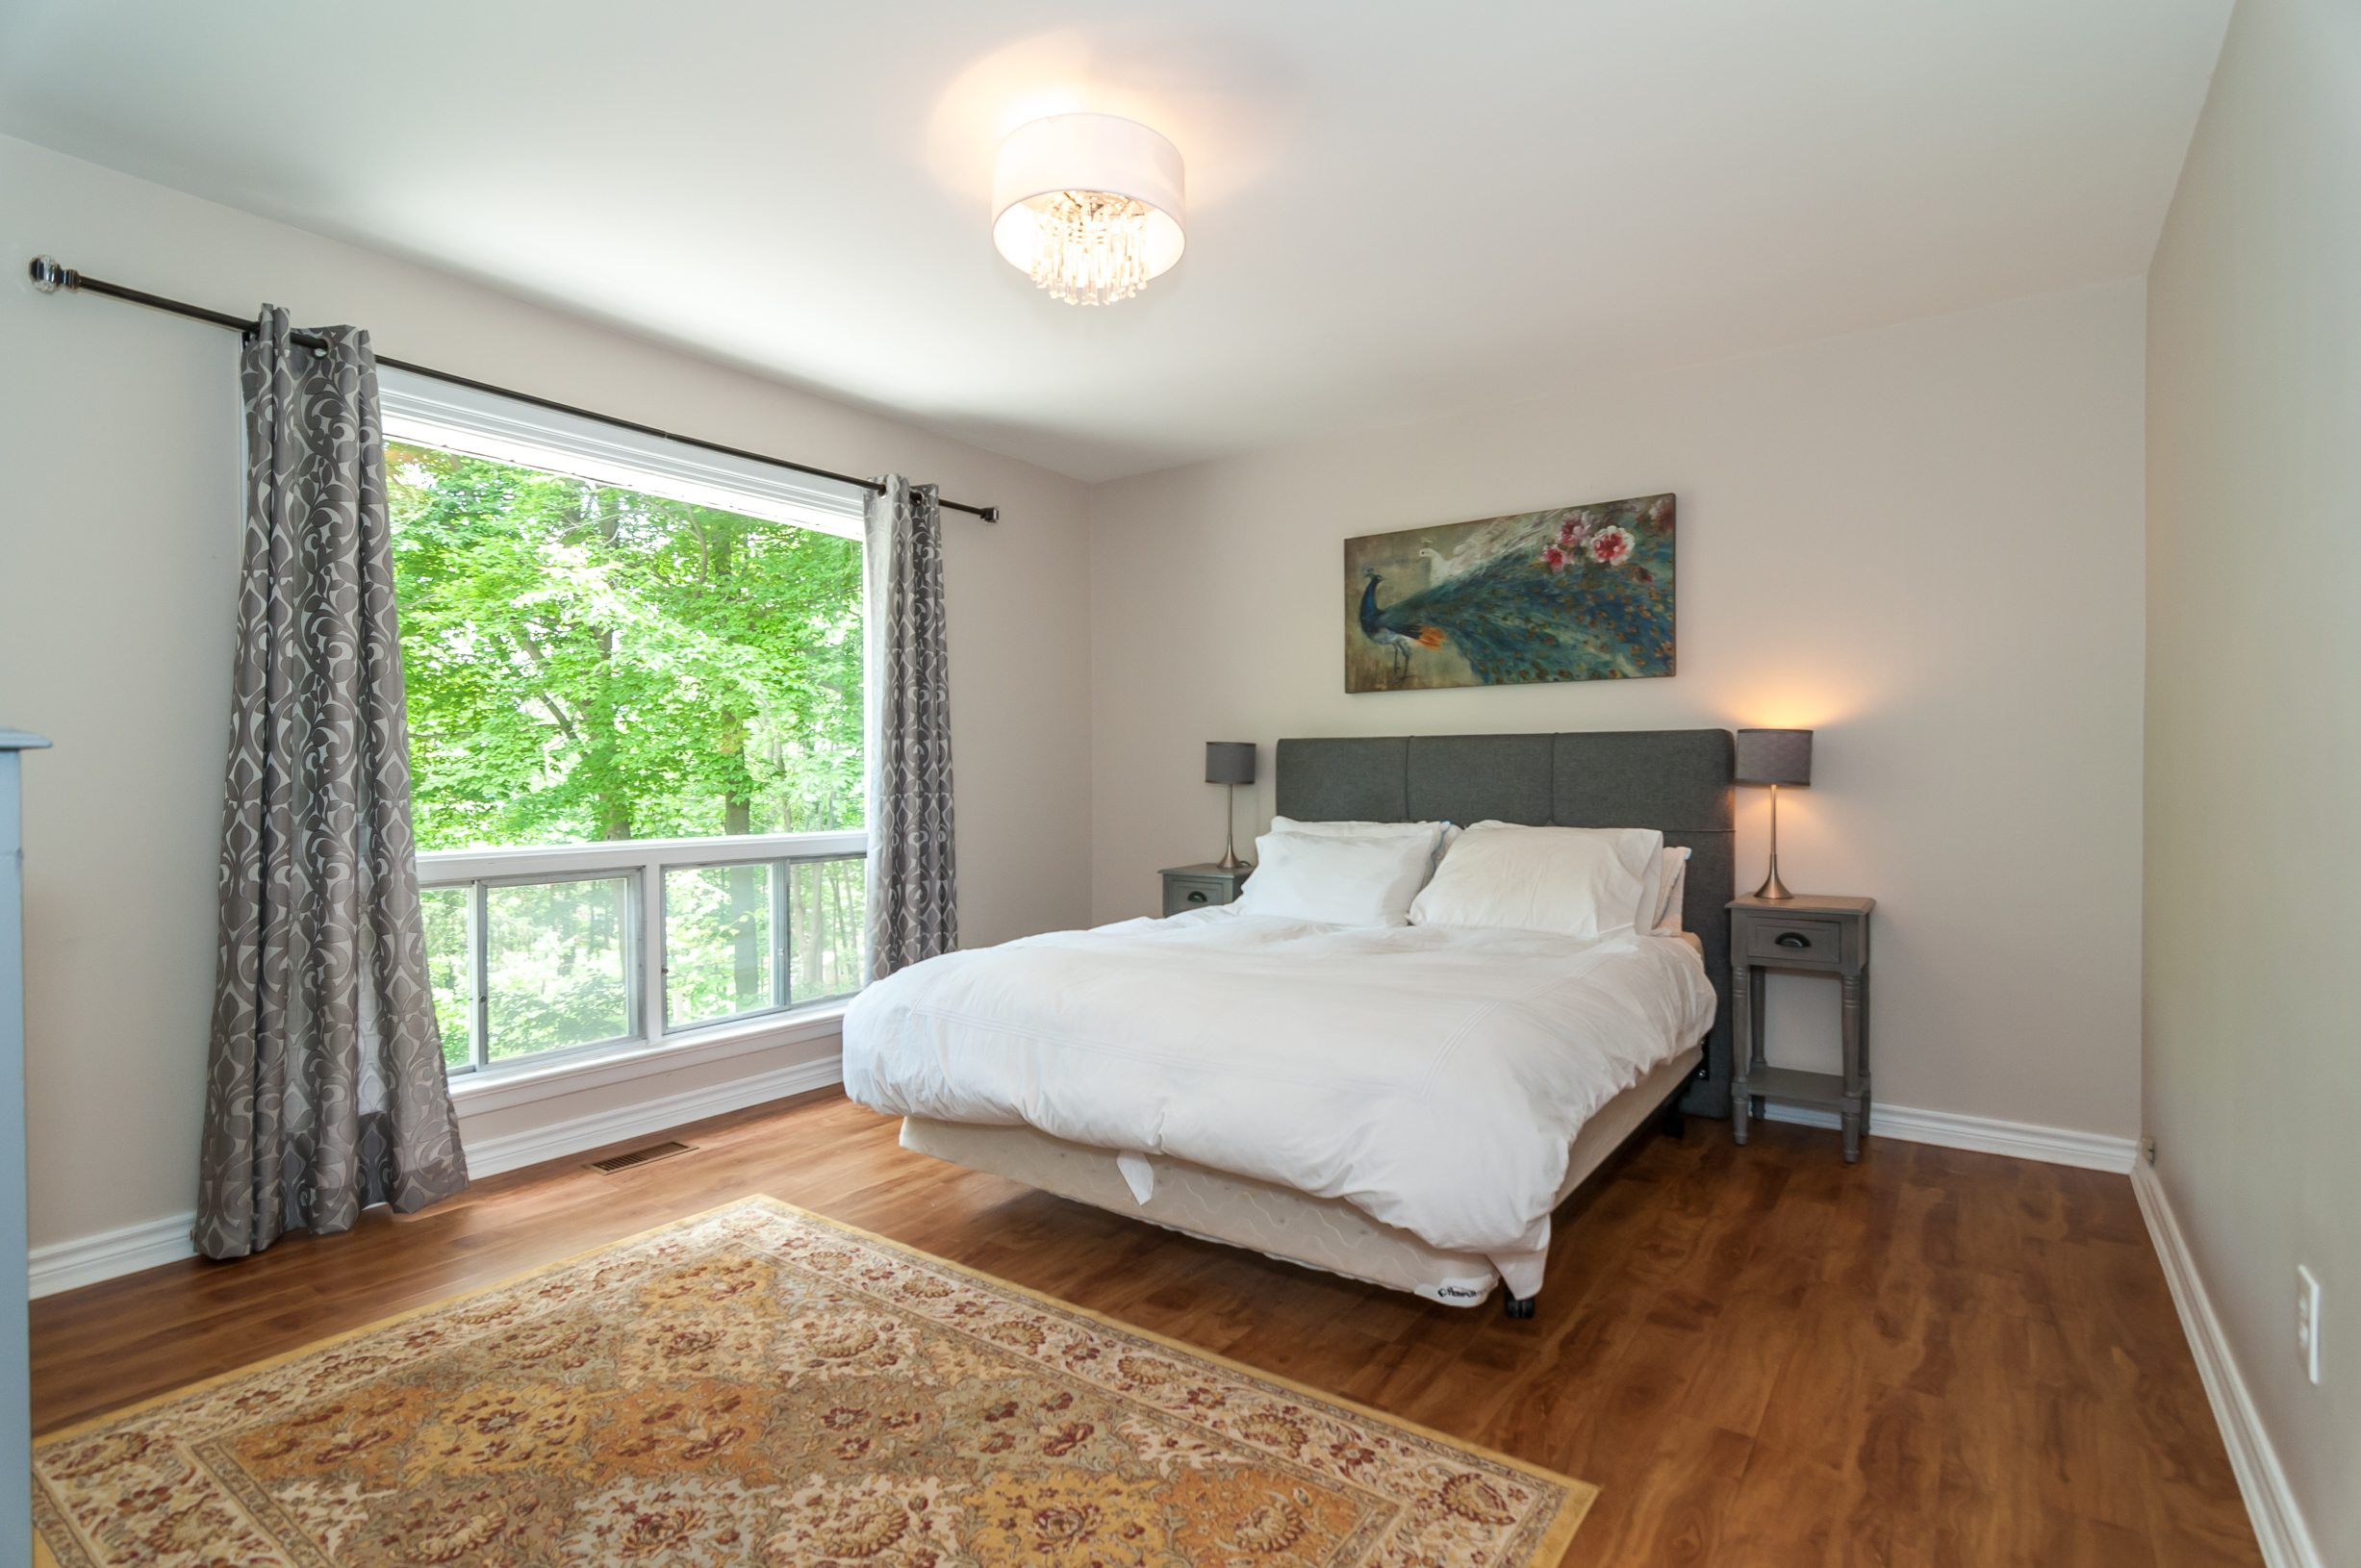 49 Theresa St | The Fournier Experience